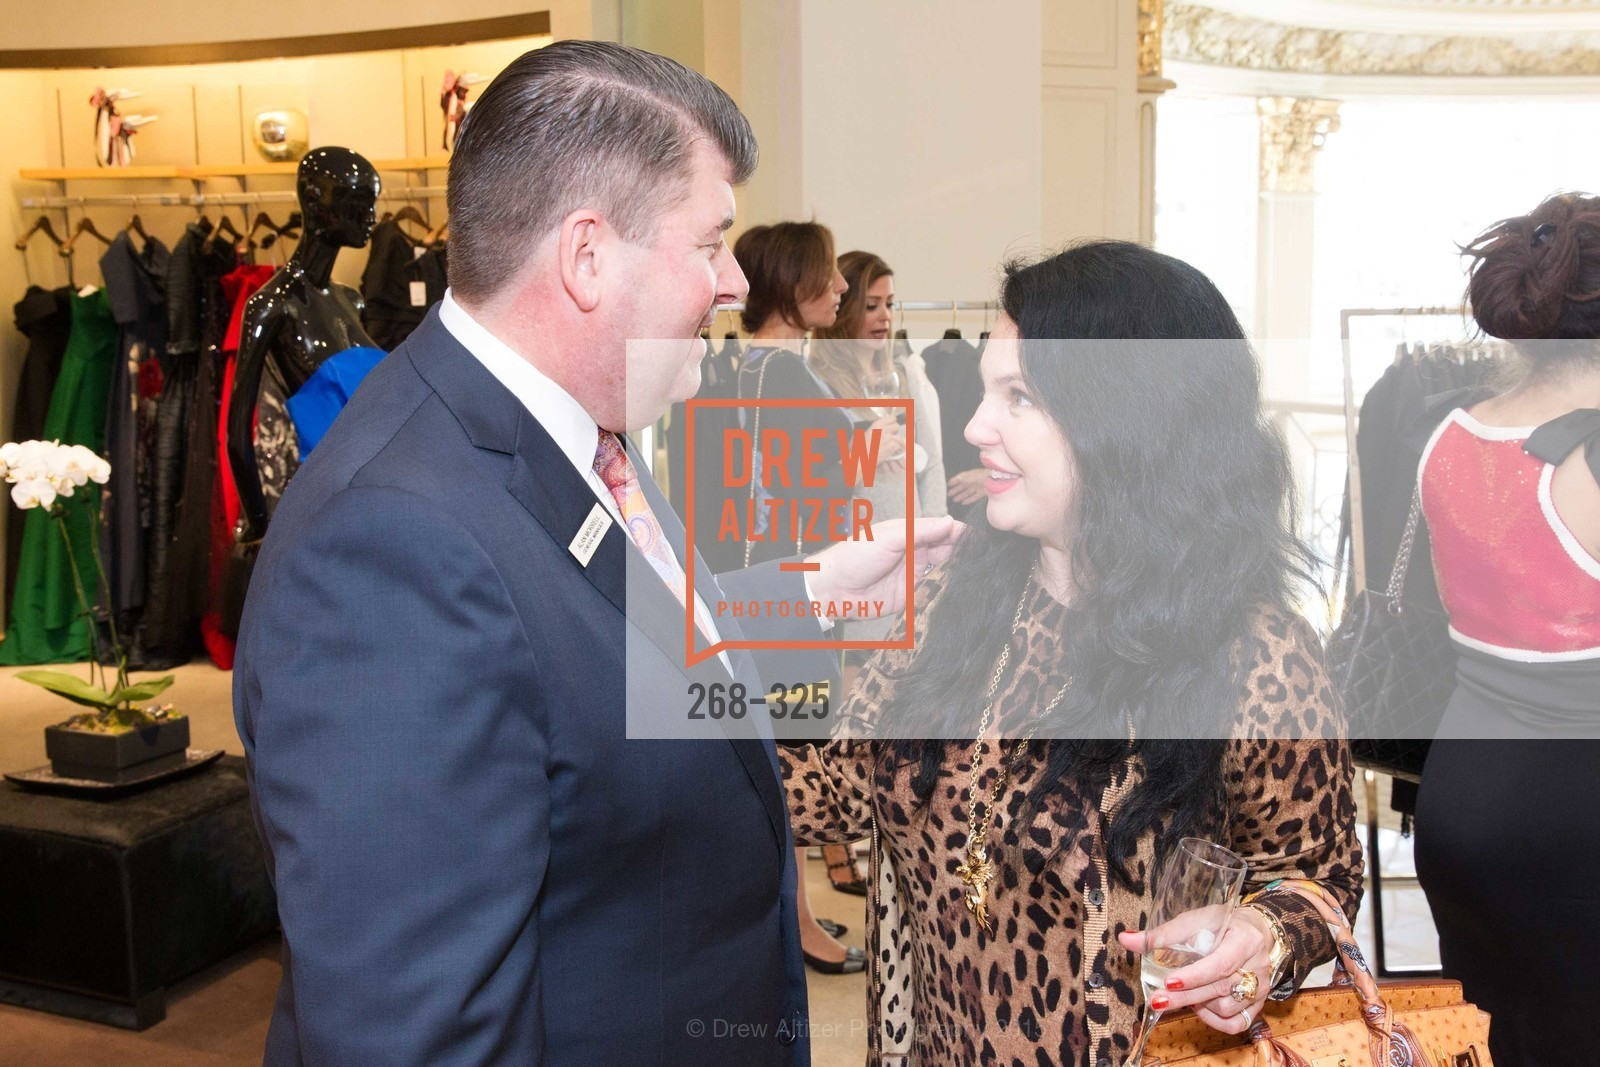 Alan Morrell, Rada Katz, Maiyet Reception at Neiman Marcus, Neiman Marcus, September 29th, 2015,Drew Altizer, Drew Altizer Photography, full-service agency, private events, San Francisco photographer, photographer california